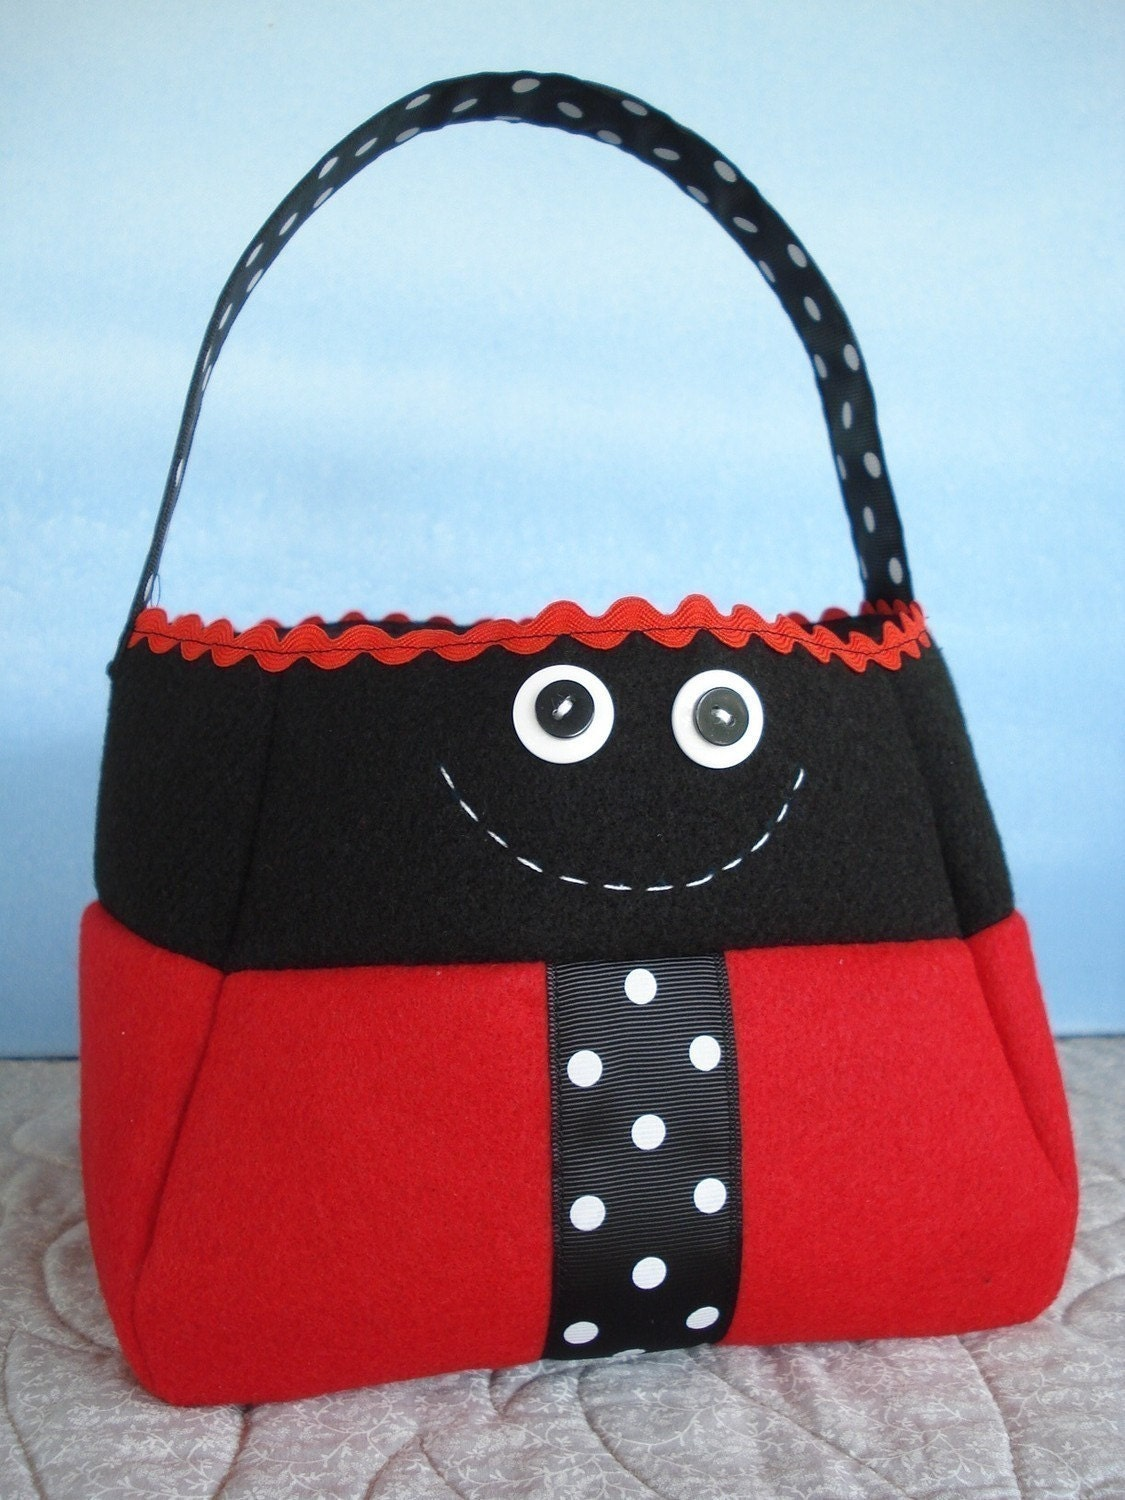 SALE - PDF ePATTERN for Bumble Bee and Ladybug Treat Bags